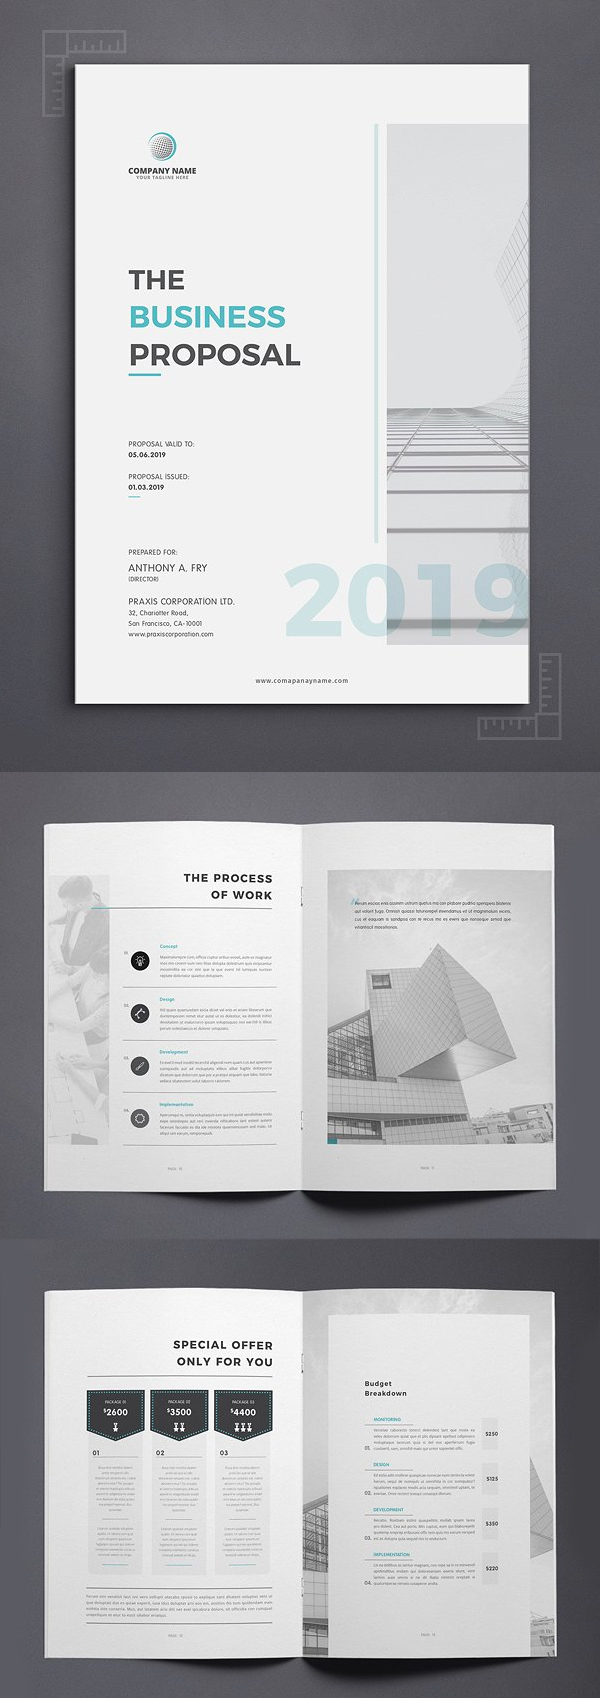 Business proposal templates design graphic design junction professional business proposal templates design 1 wajeb Images